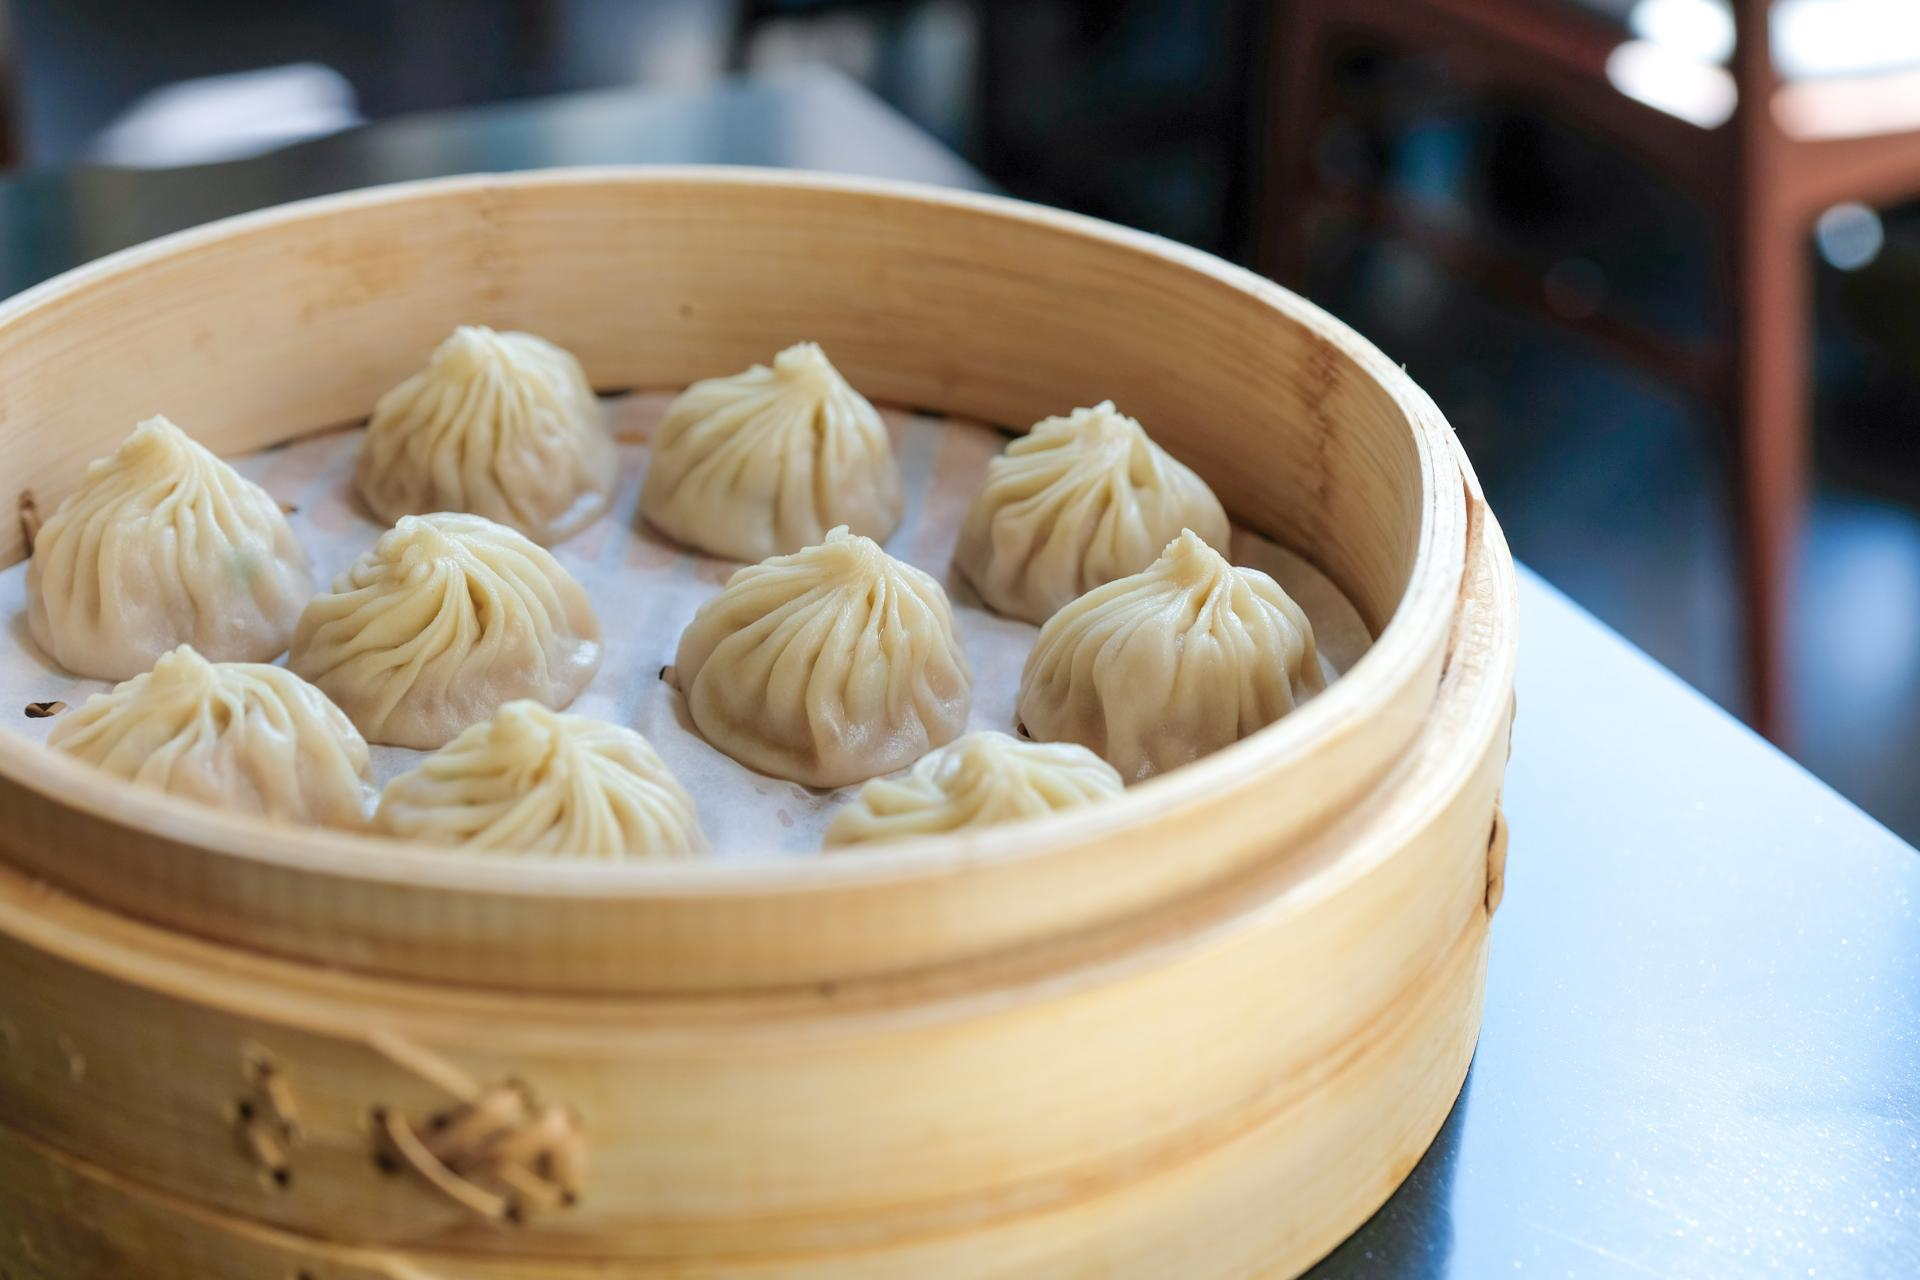 Seattle Din Tai Fung